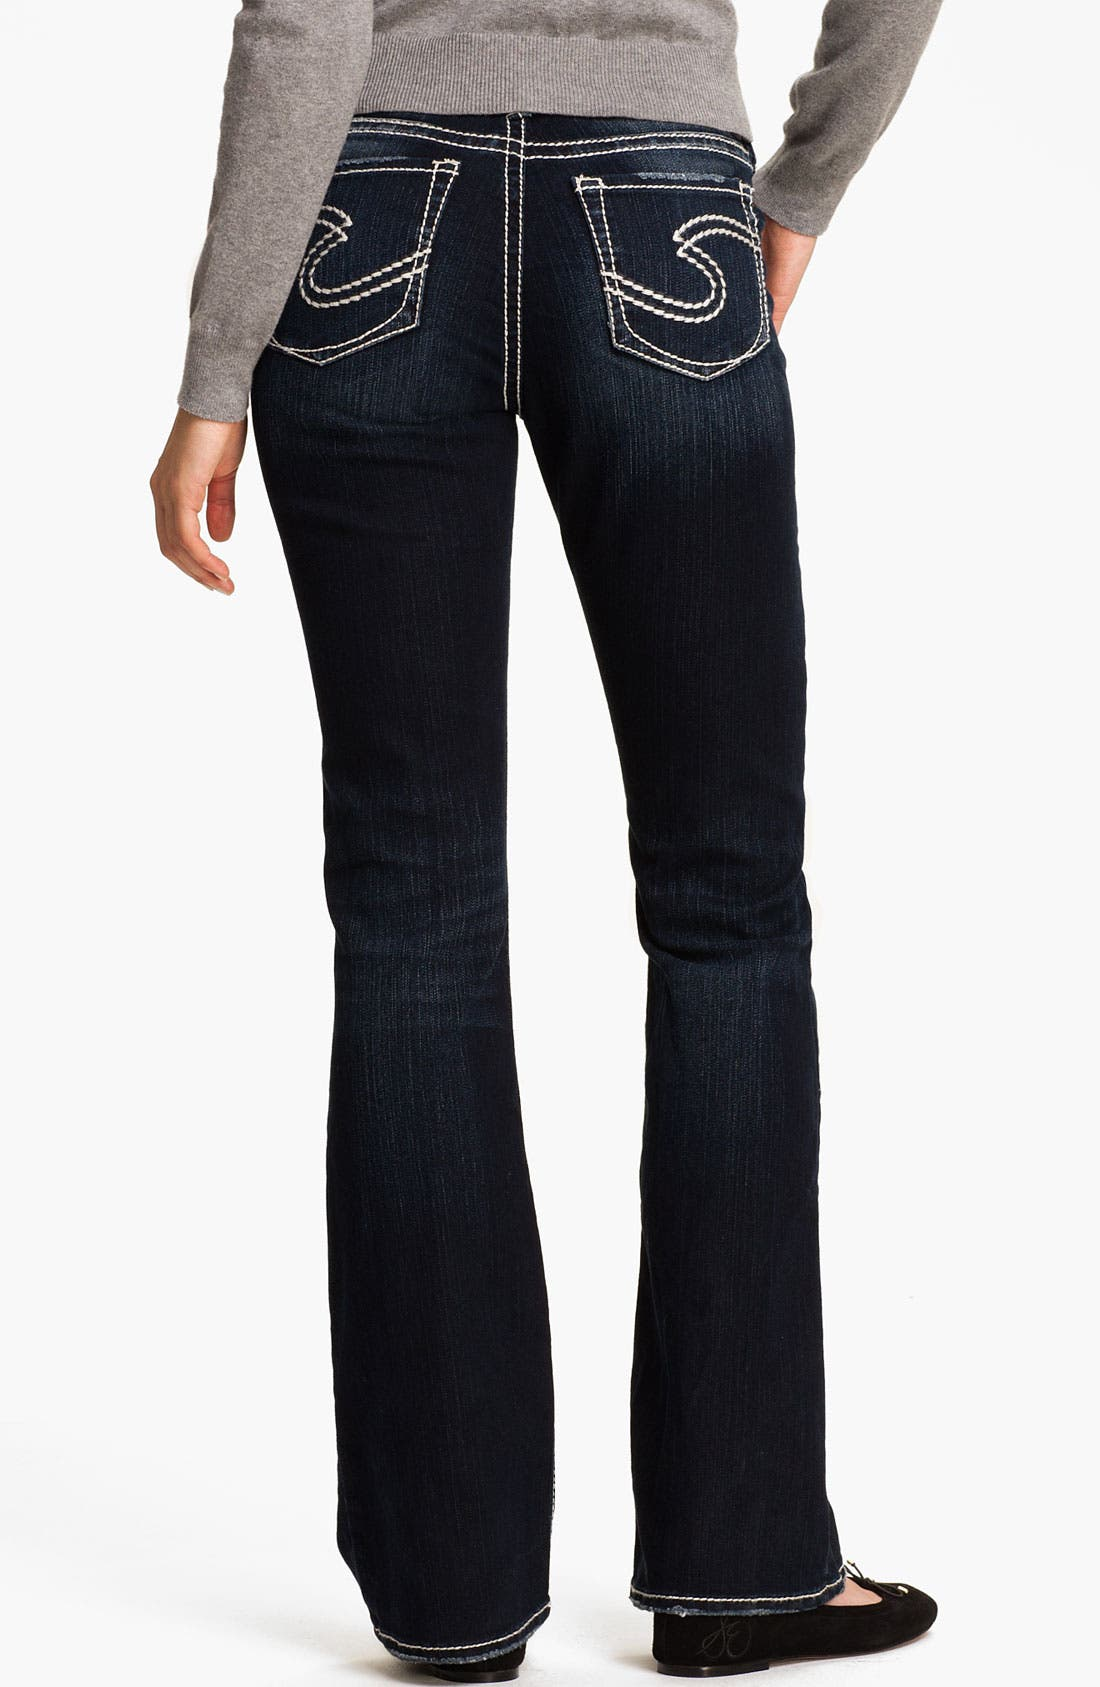 Alternate Image 1 Selected - Silver Jeans Co. 'Natsuki' Bootcut Jeans (Juniors)